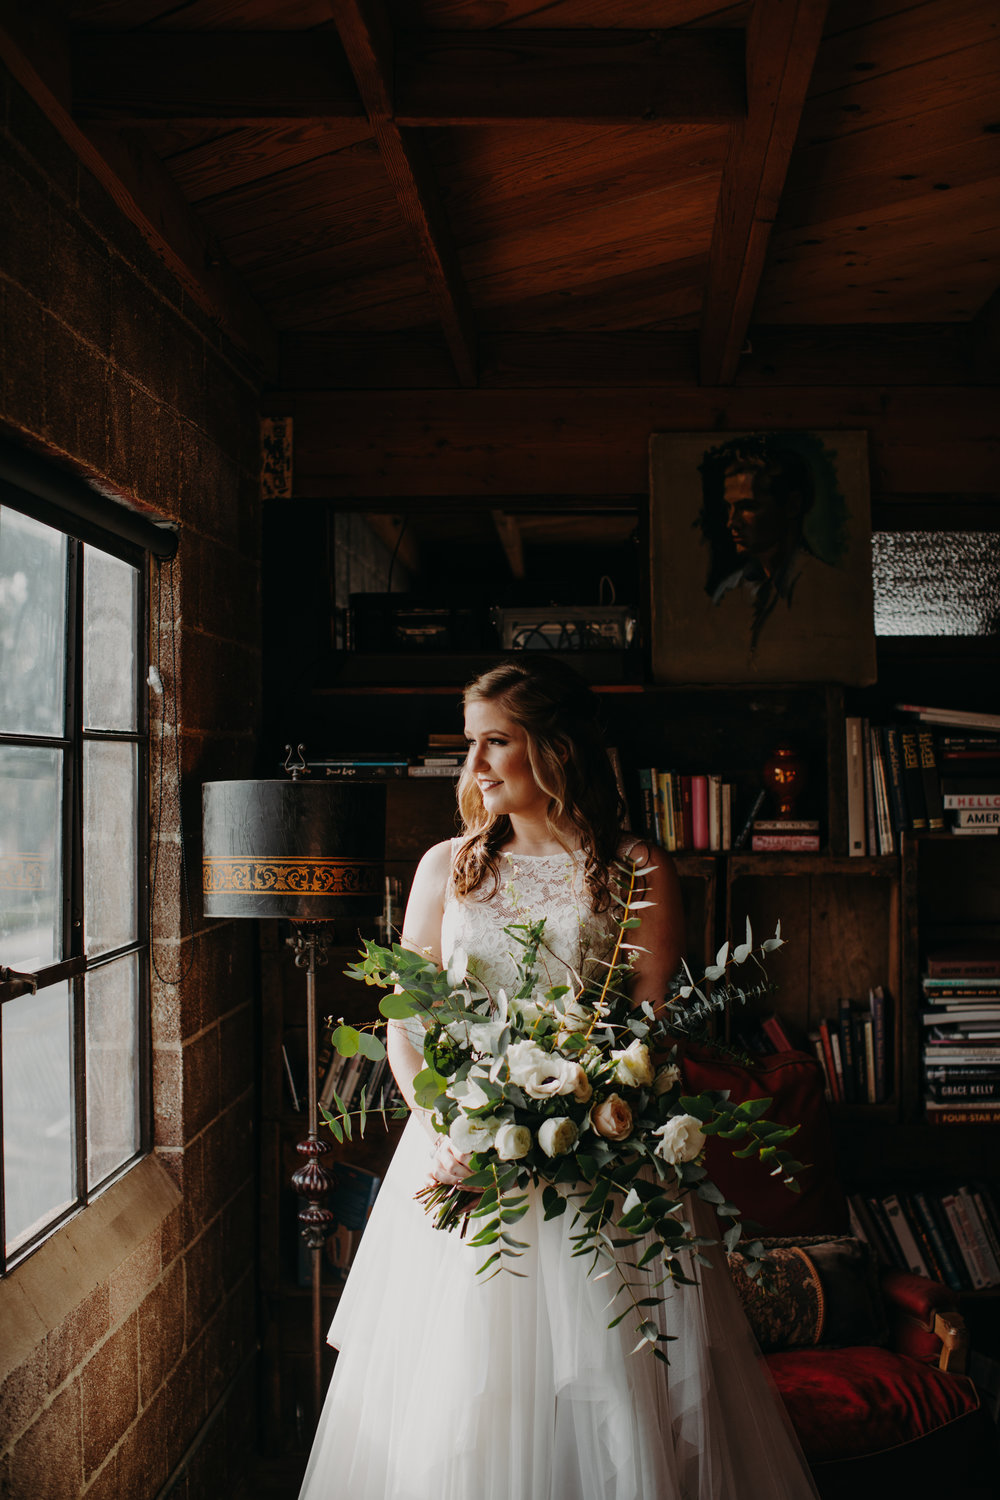 Smoky Hollow Studios Wedding Anne & Lewis Emily Magers Photography-142.jpg